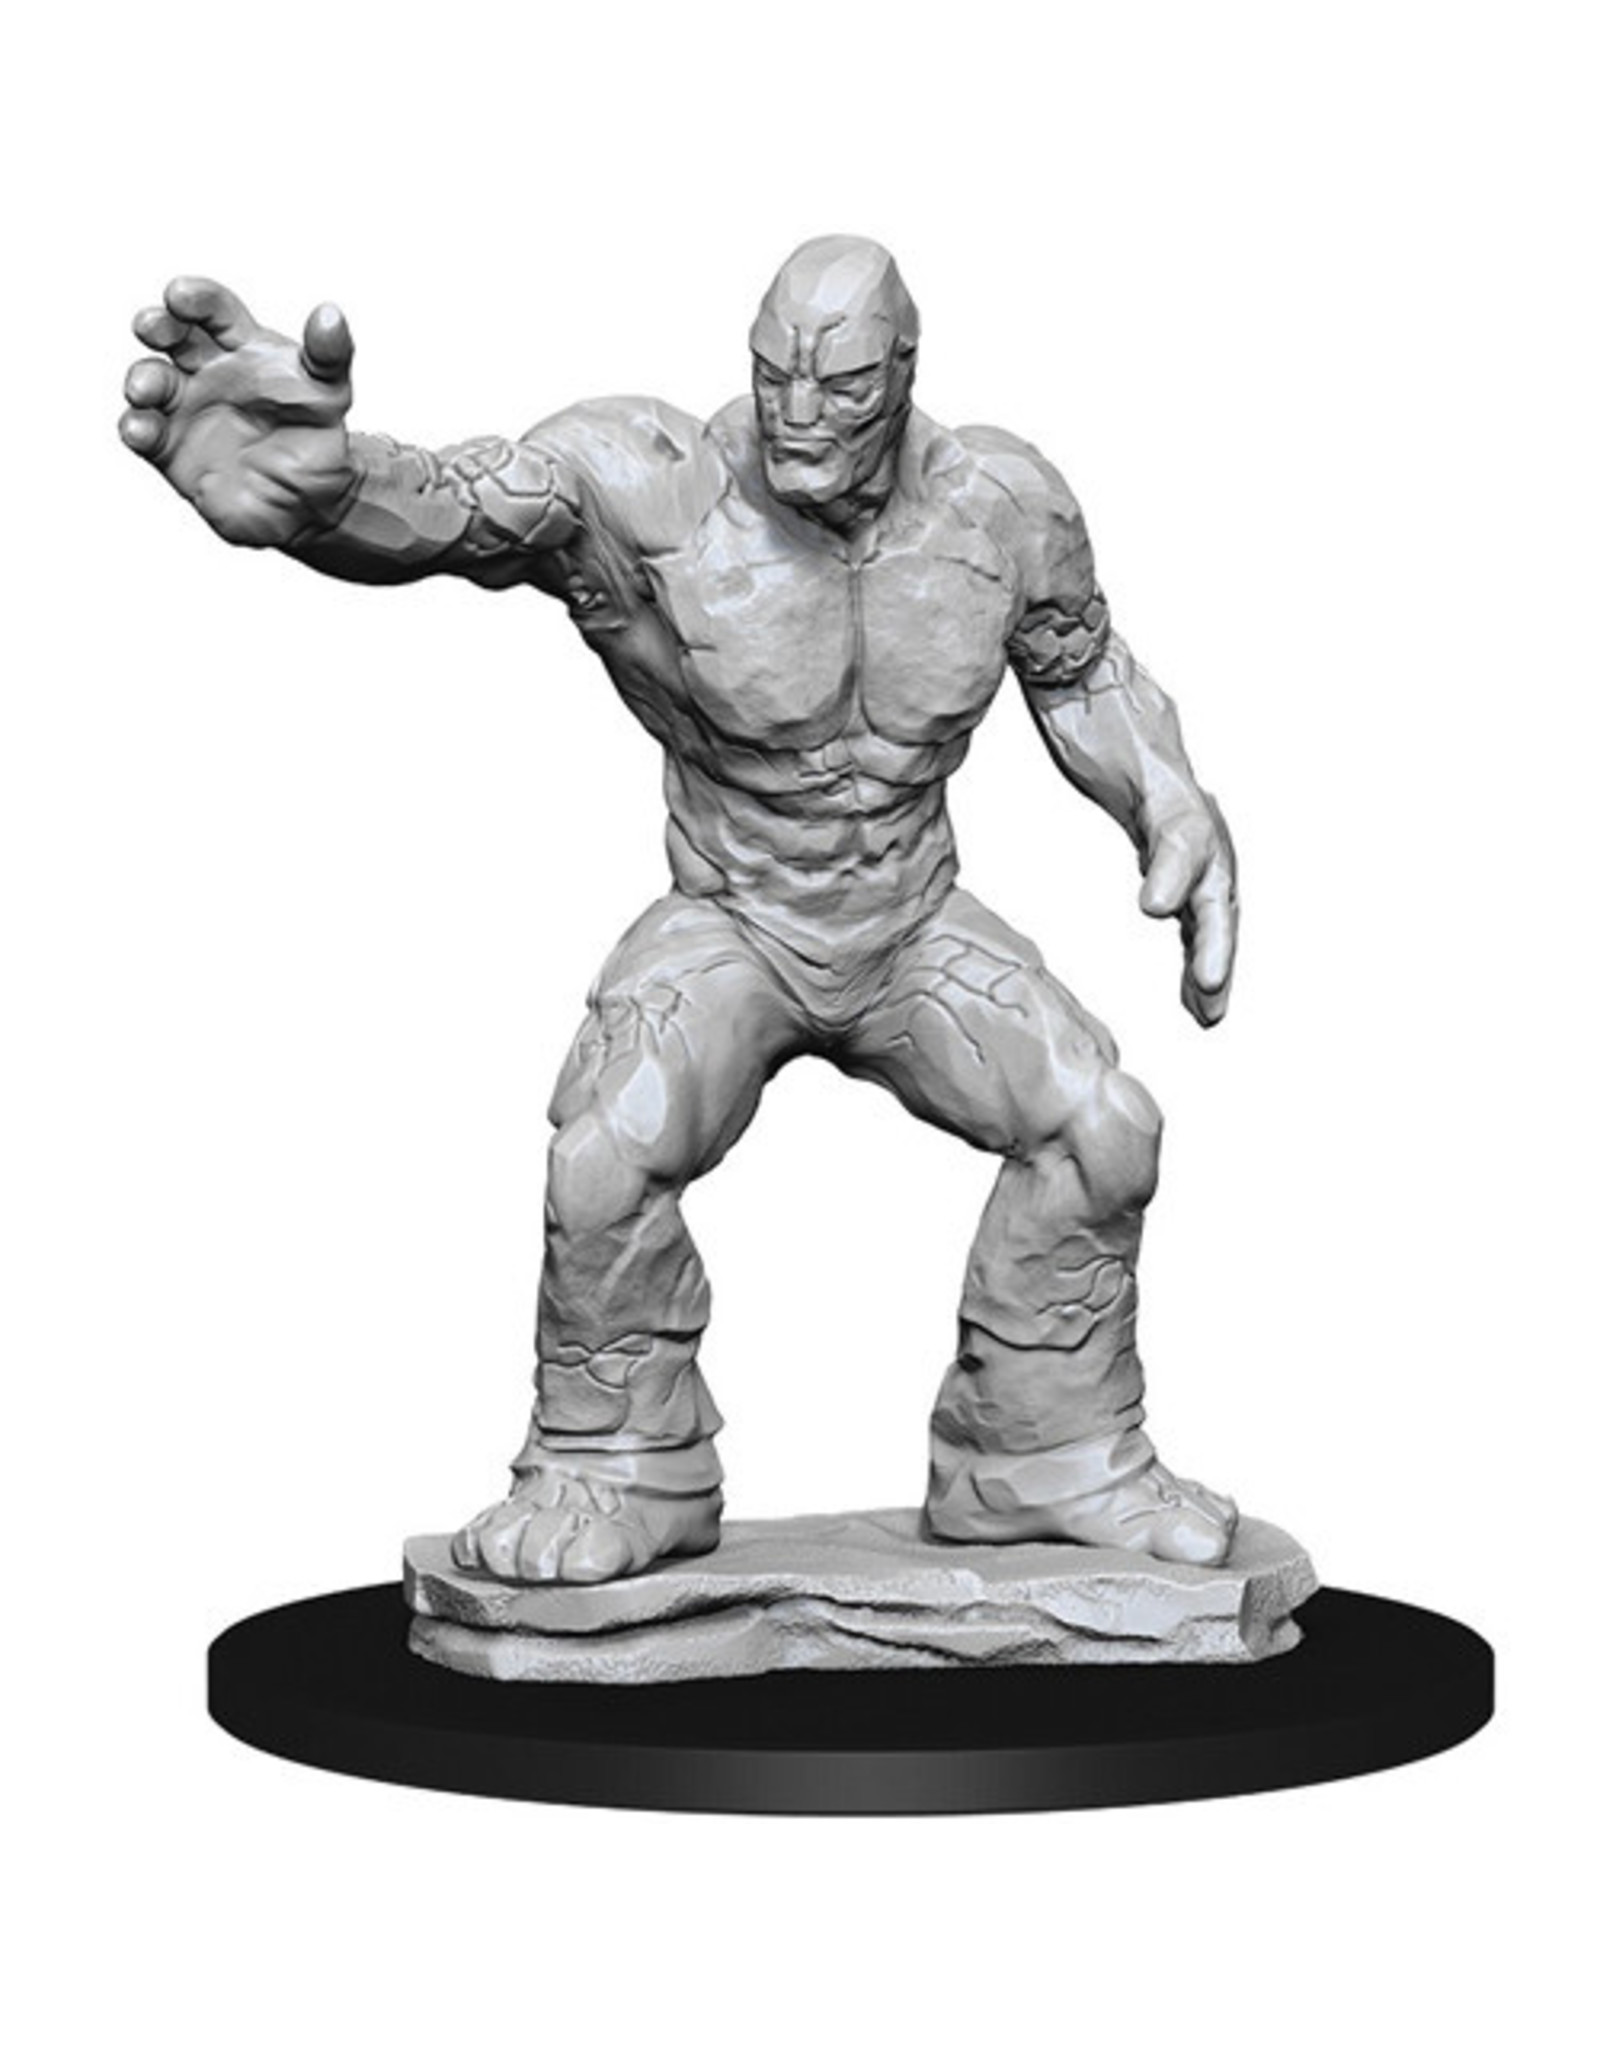 WIZKIDS D&D NOLZUR'S MARVELOUS CLAY GOLEM UNPAINTED MINI